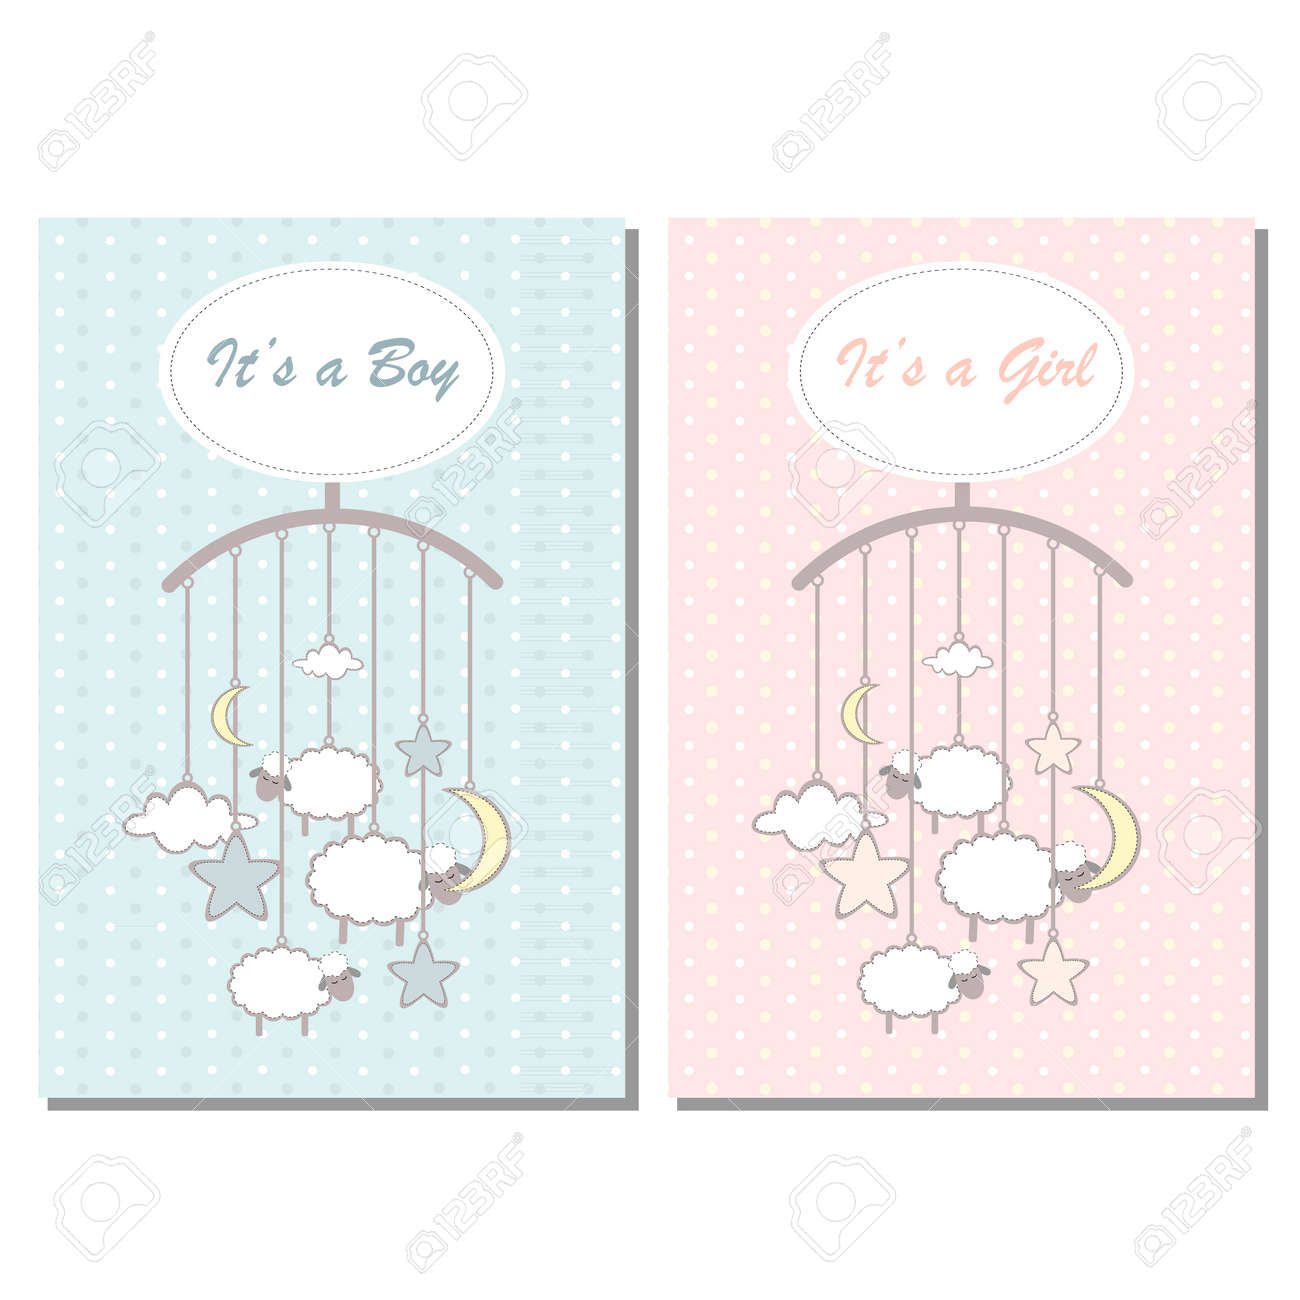 Baby Shower Boy And Girl Invitation Card Template For Scrapbooking With Little Lambs Stars Moon And Clouds Vector Illustration